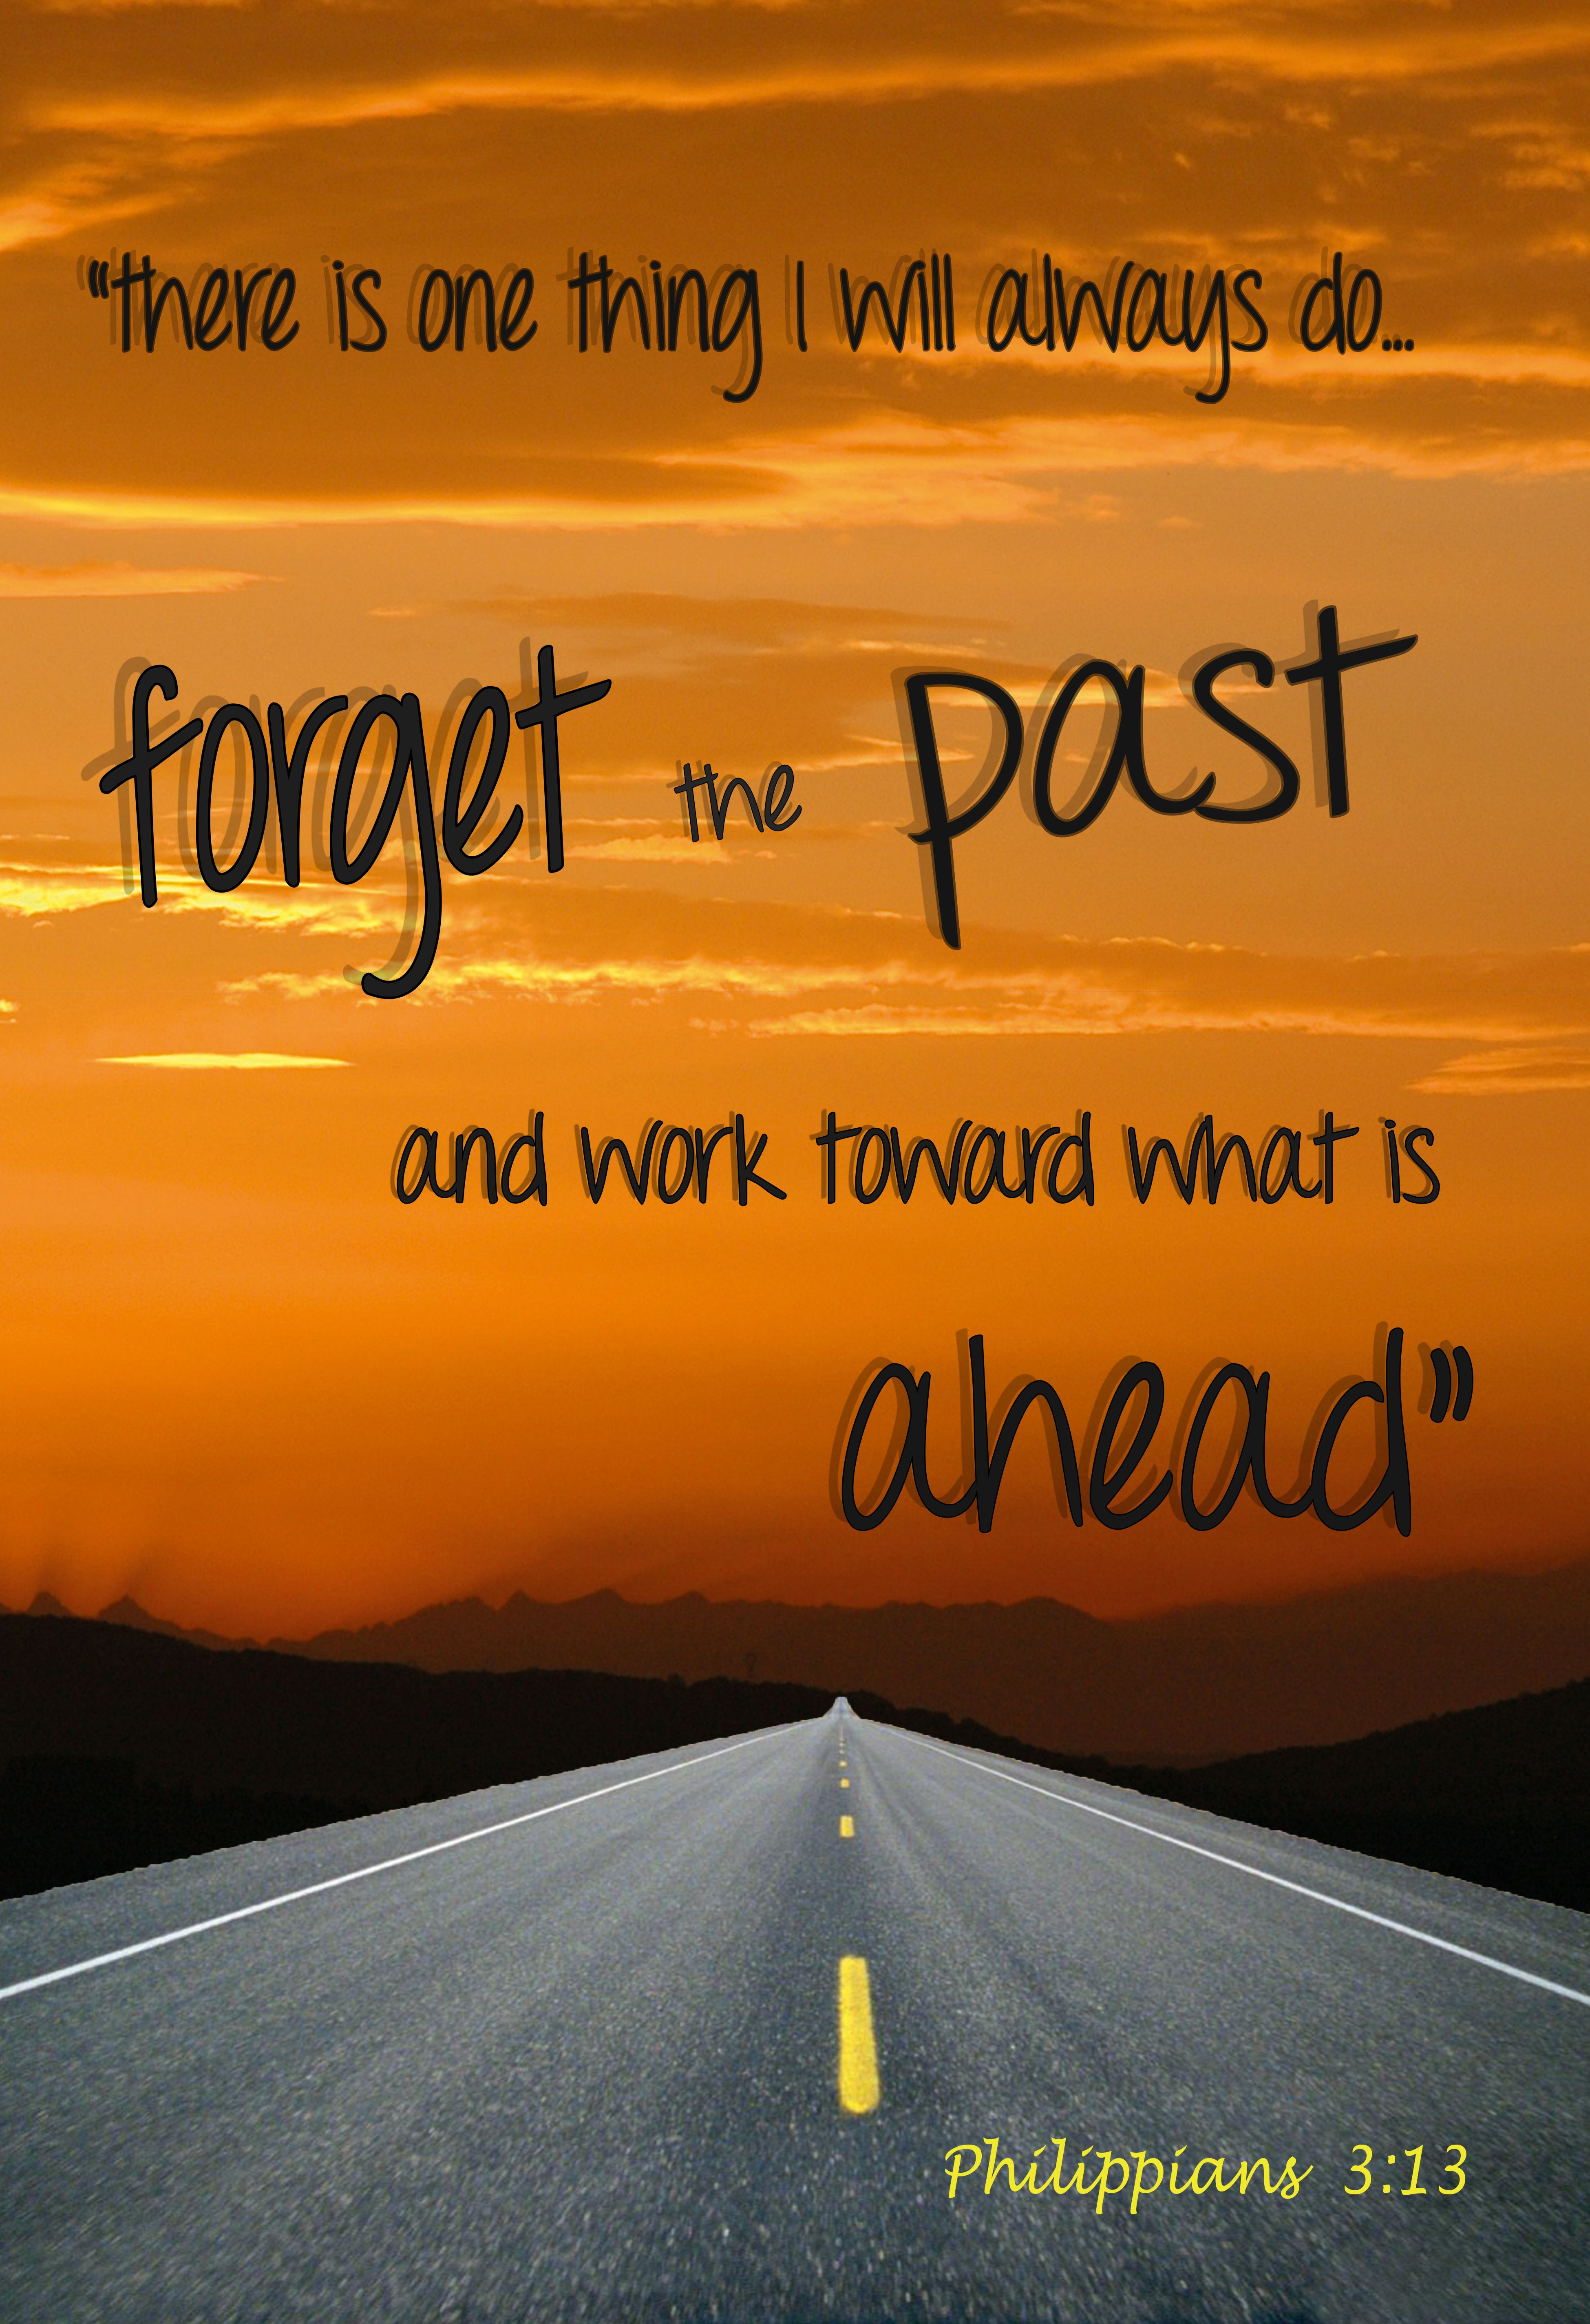 Learn From The Past But Focus On Today We Cant Move Forward If We